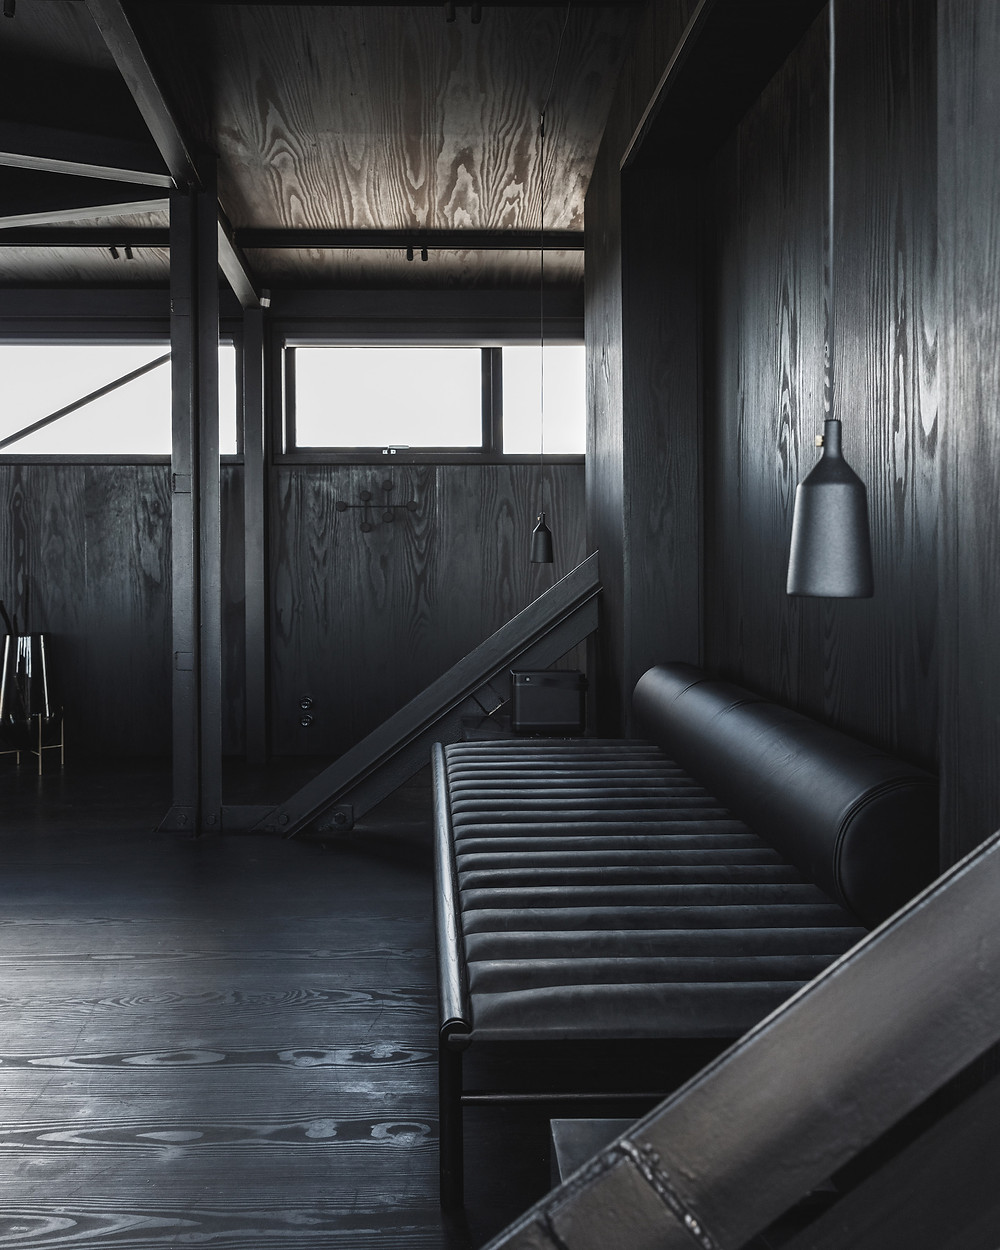 The intimate one-room hotel at THEKRANE is one of the most unconventional and exclusive hotel experiences that Copenhagen has to offer. The room at the top of the crane, in the old engine room, has a modern, minimalist decor with beautiful and functional furniture of the best Danish design. The all black furniture and the black-painted wooden walls and wooden floors create a sense of intimacy and calm.